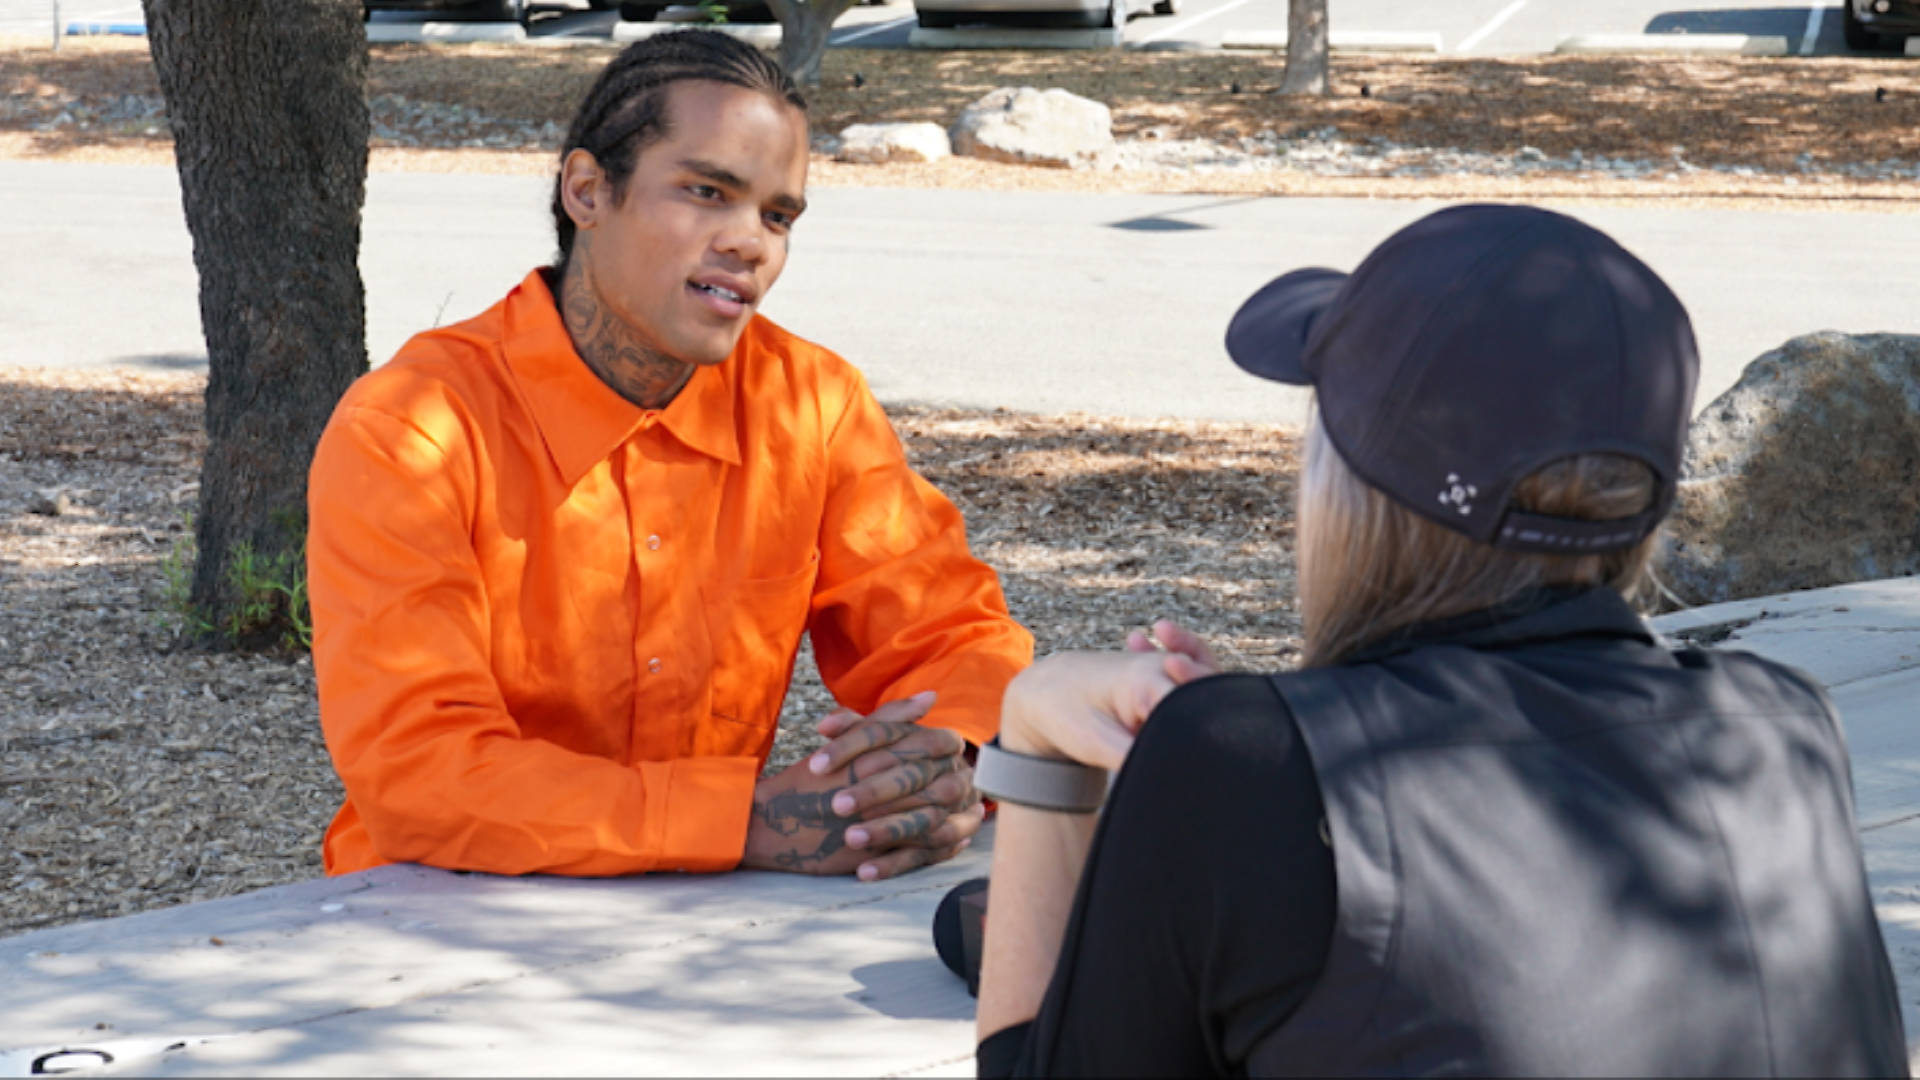 Seg inmate interview